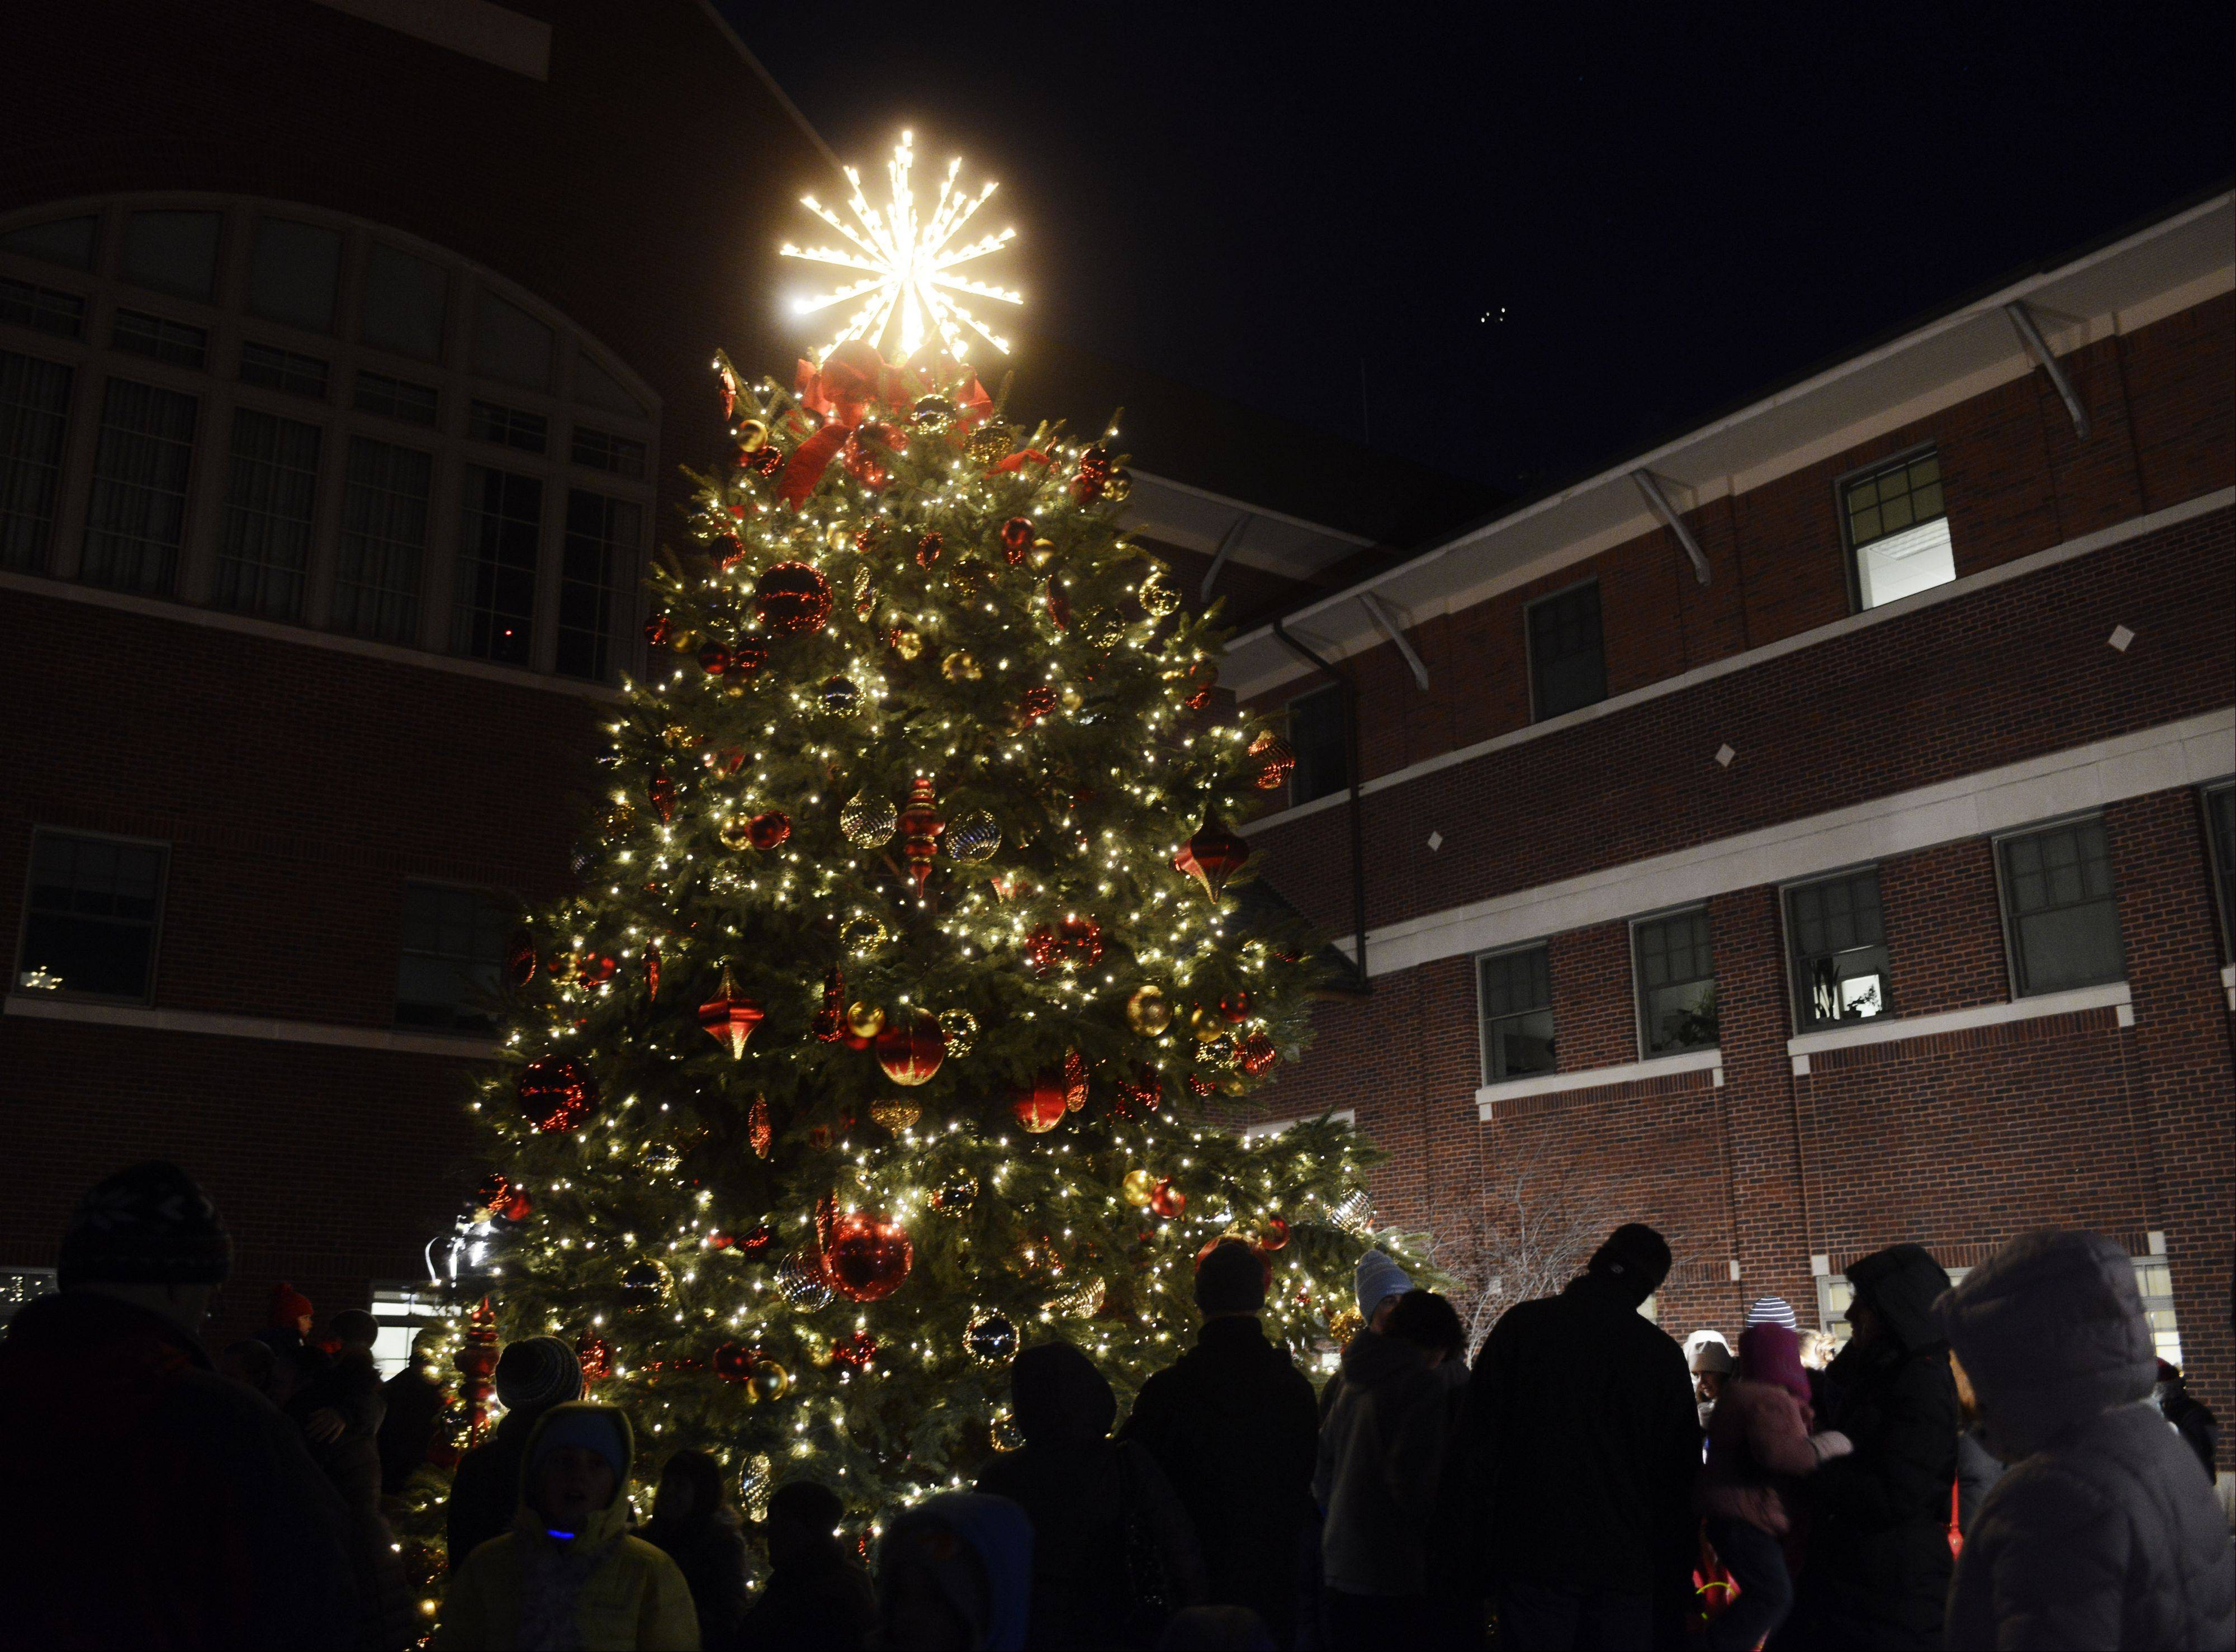 JOE LEWNARD/jlewnard@dailyherald.comPeople gather around the Christmas tree Wednesday outside Mount Prospect's village hall.